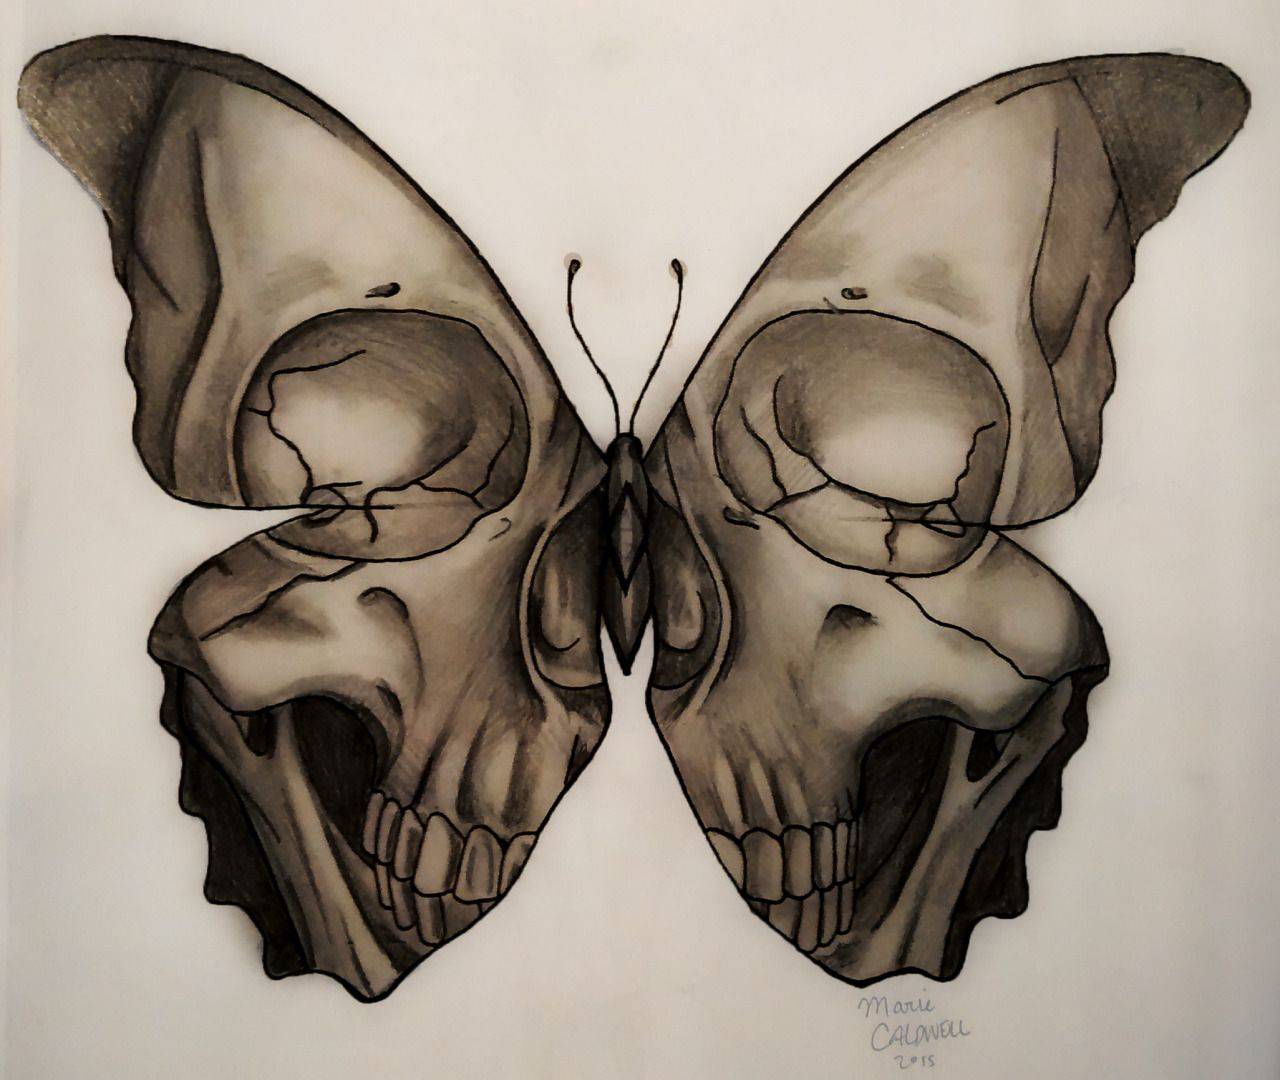 medusa illustration u201cskull butterfly tattoo design marie caldwell rh pinterest com skull butterfly tattoo sketch skull butterfly tattoo meaning